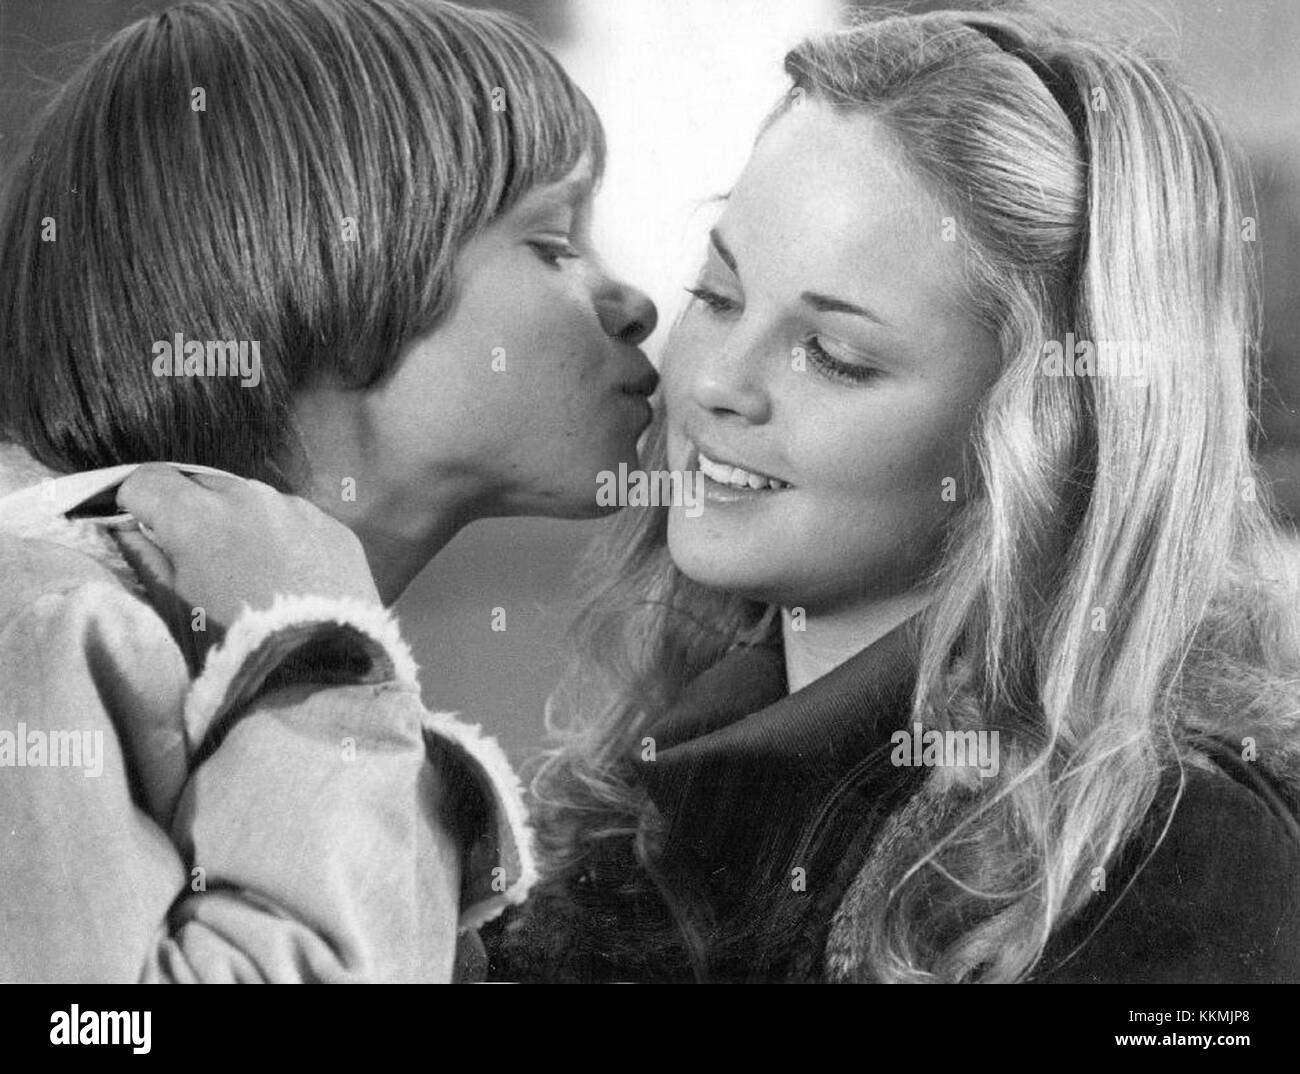 James at 15 Lance Kerwin Melissa Sue Anderson 1977 - Stock Image